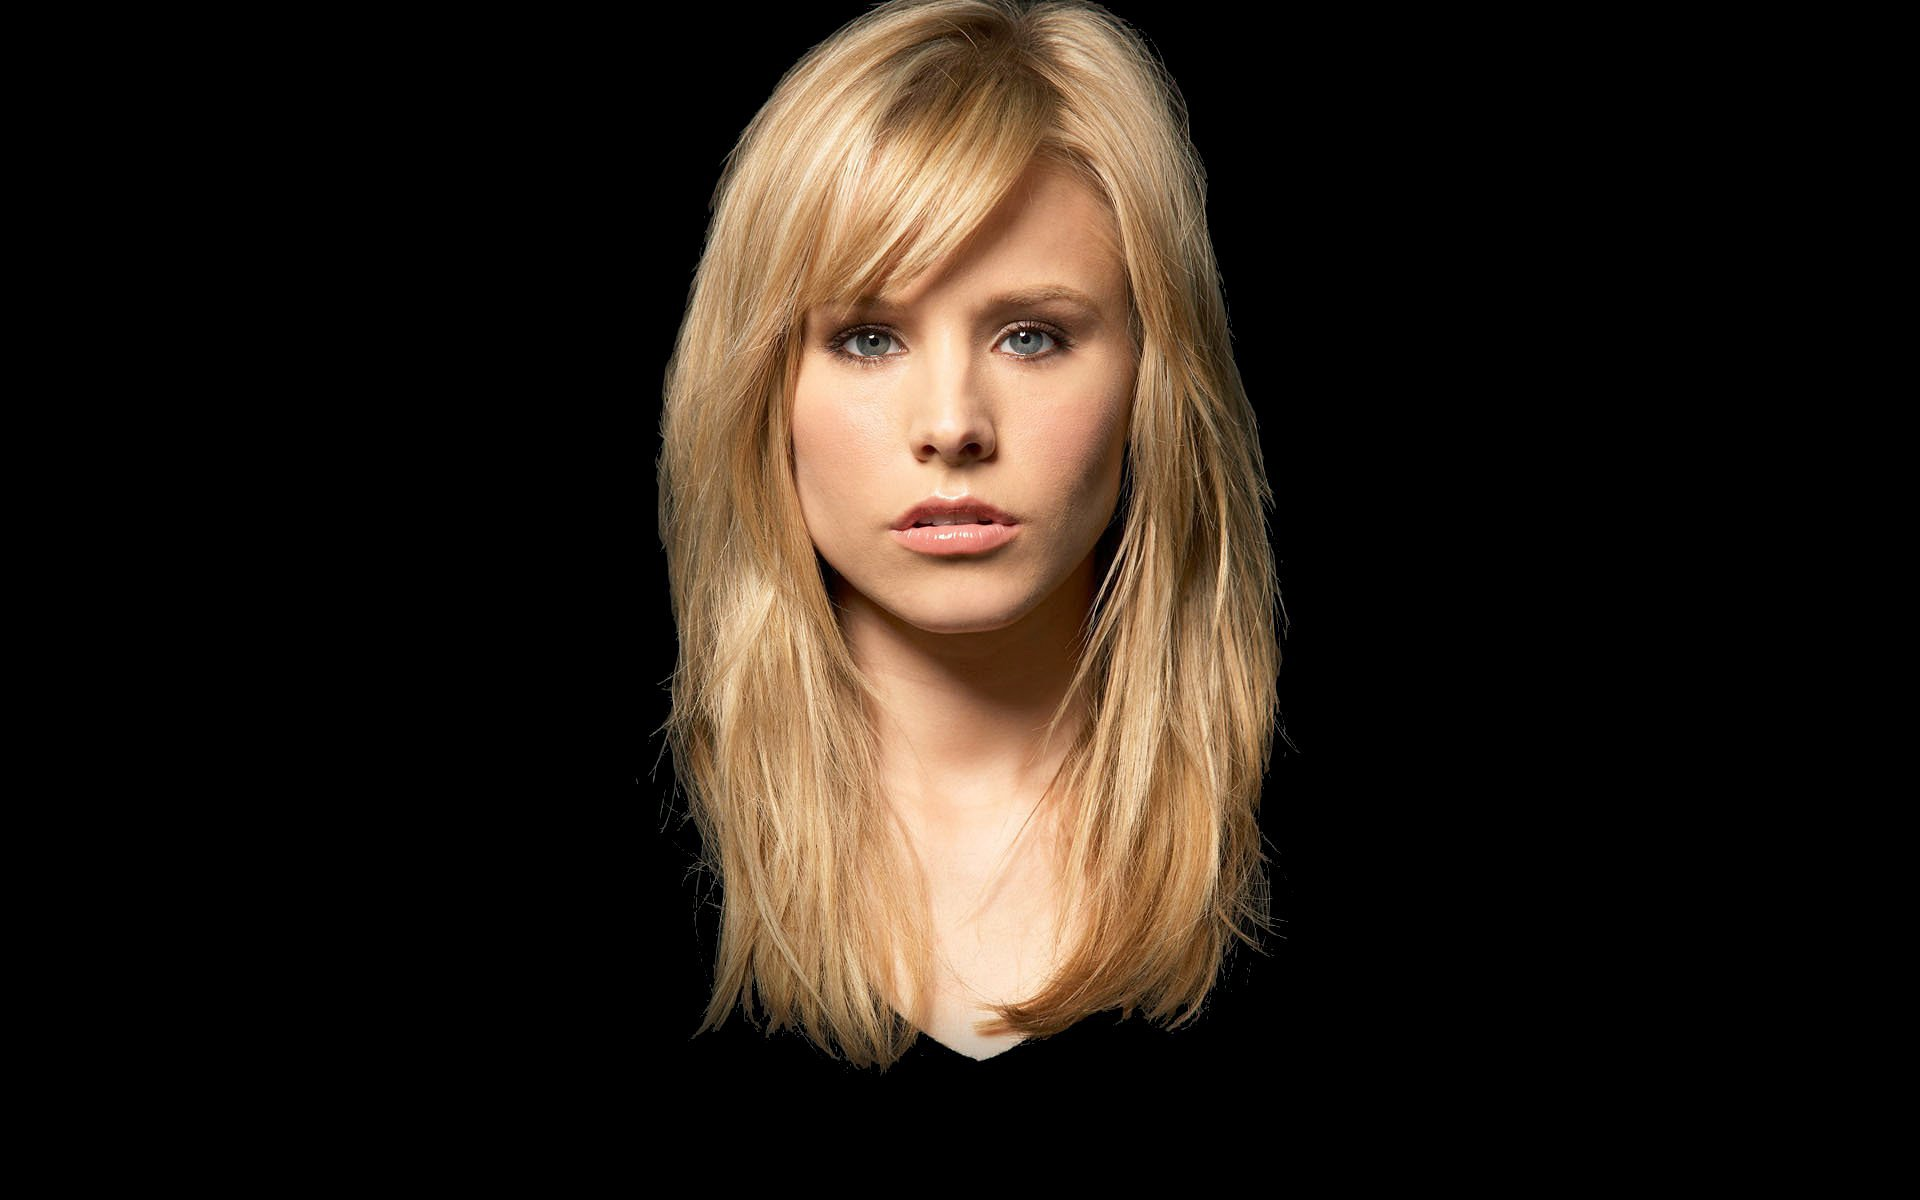 Kristen bell full hd wallpaper and background image - High resolution wallpaper celebrity ...